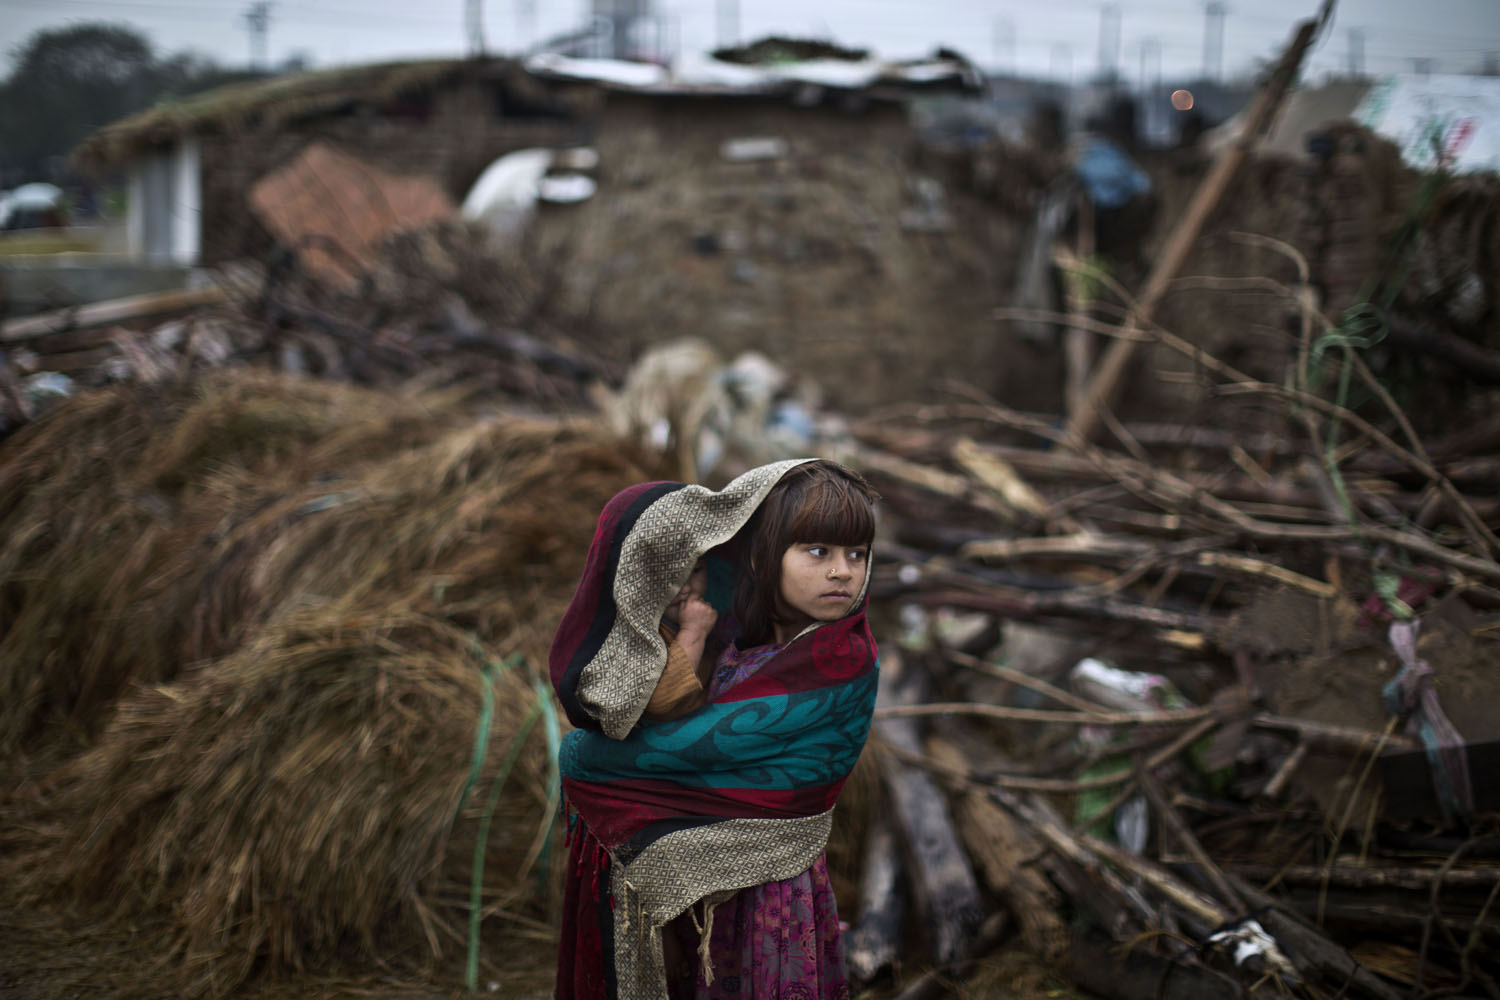 Mar. 24, 2014. An Afghan refugee girl wraps herself and her younger brother with a shawl to shield from the rain.